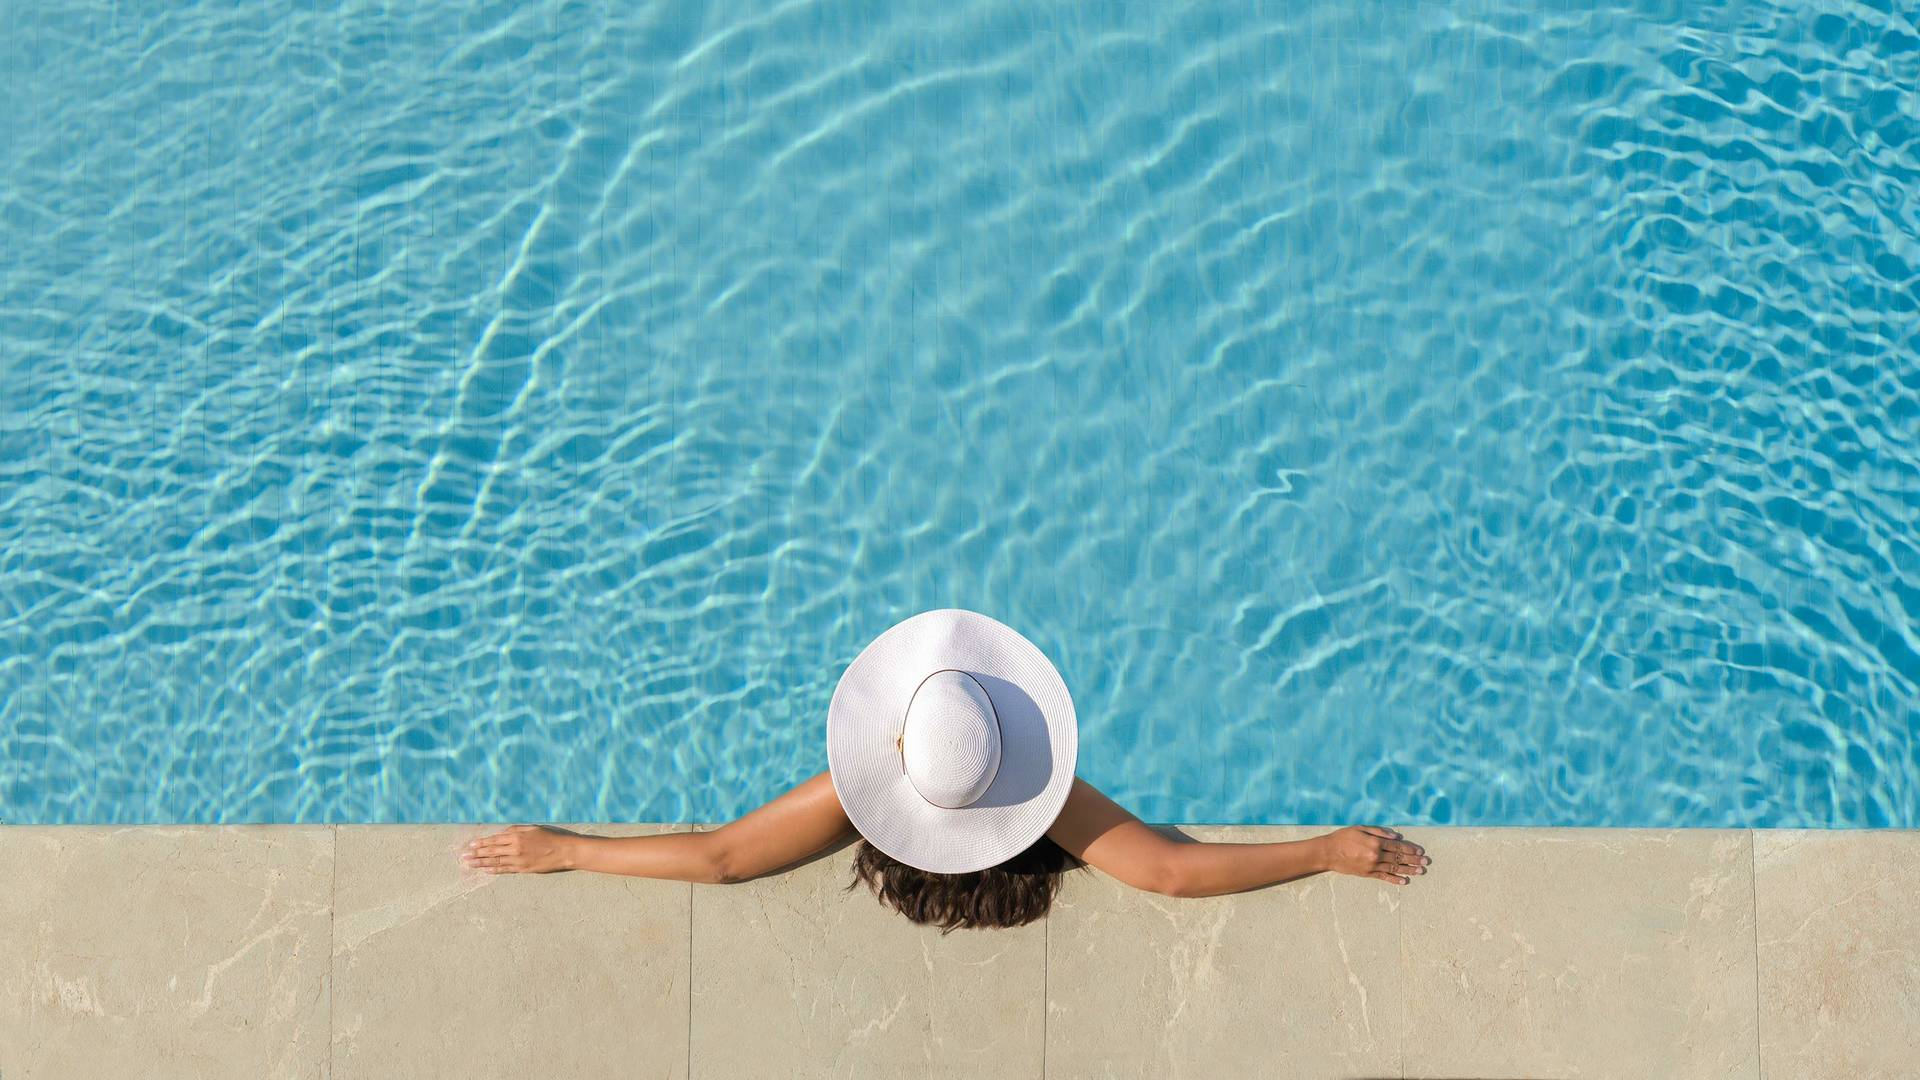 Jumeirah Port de Soller woman in hat in the pool_16-9